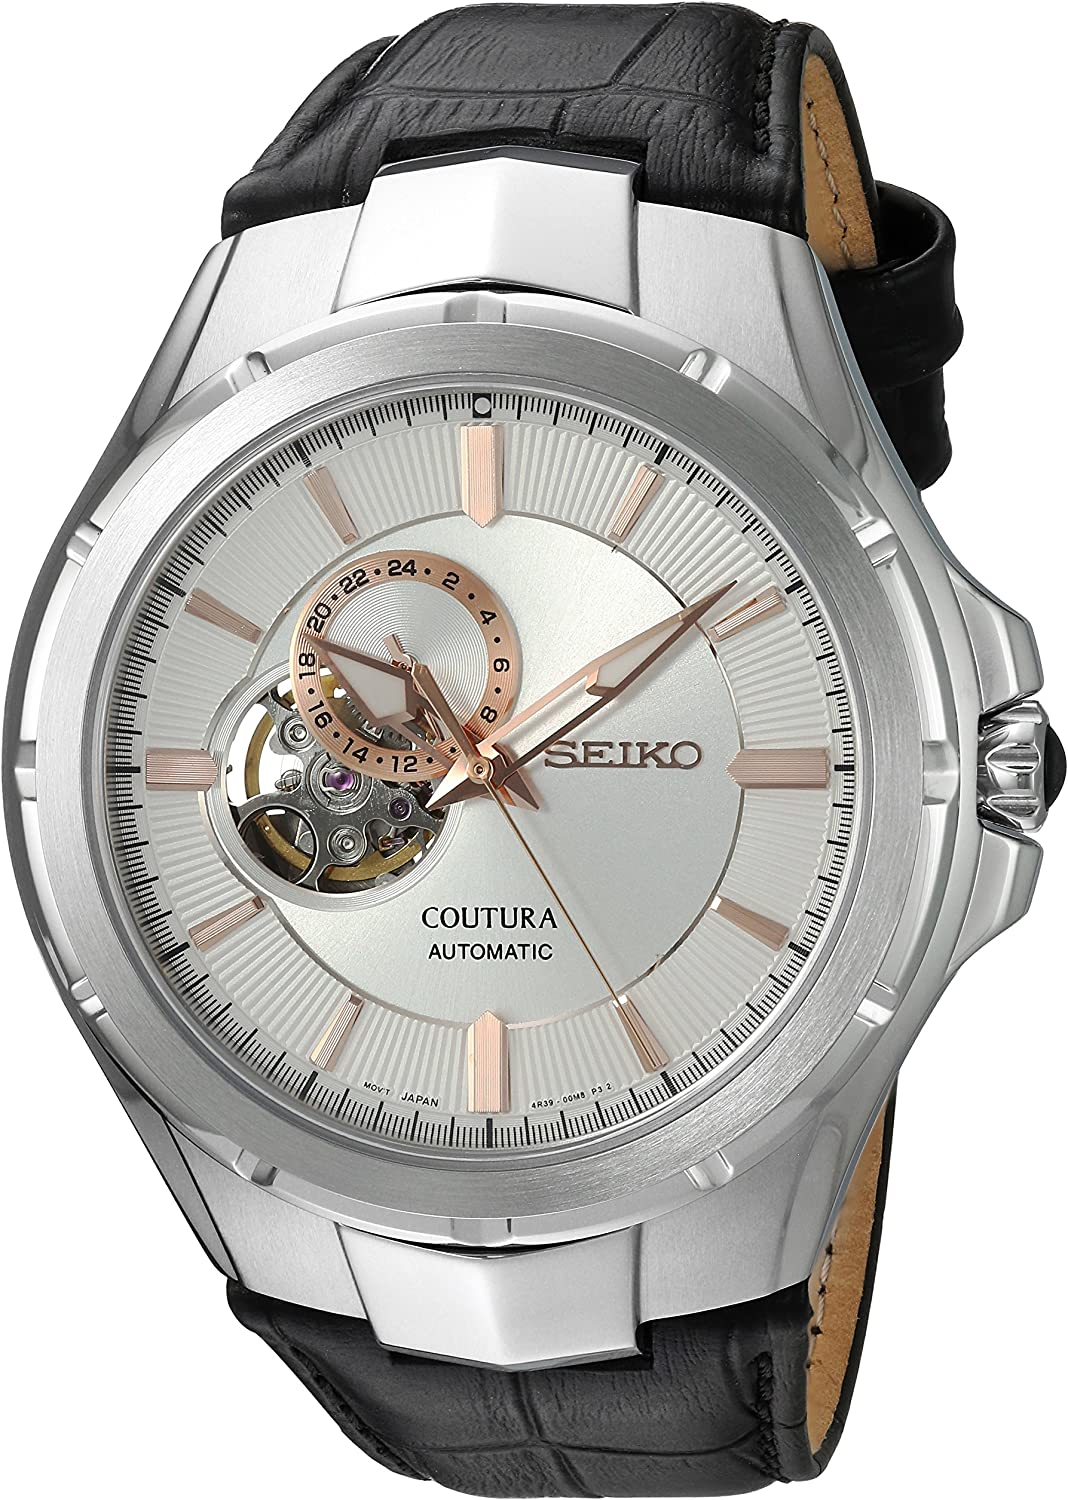 Seiko Men s Japanese Automatic Stainless Steel and Leather Casual Watch, Color Black Model SSA313